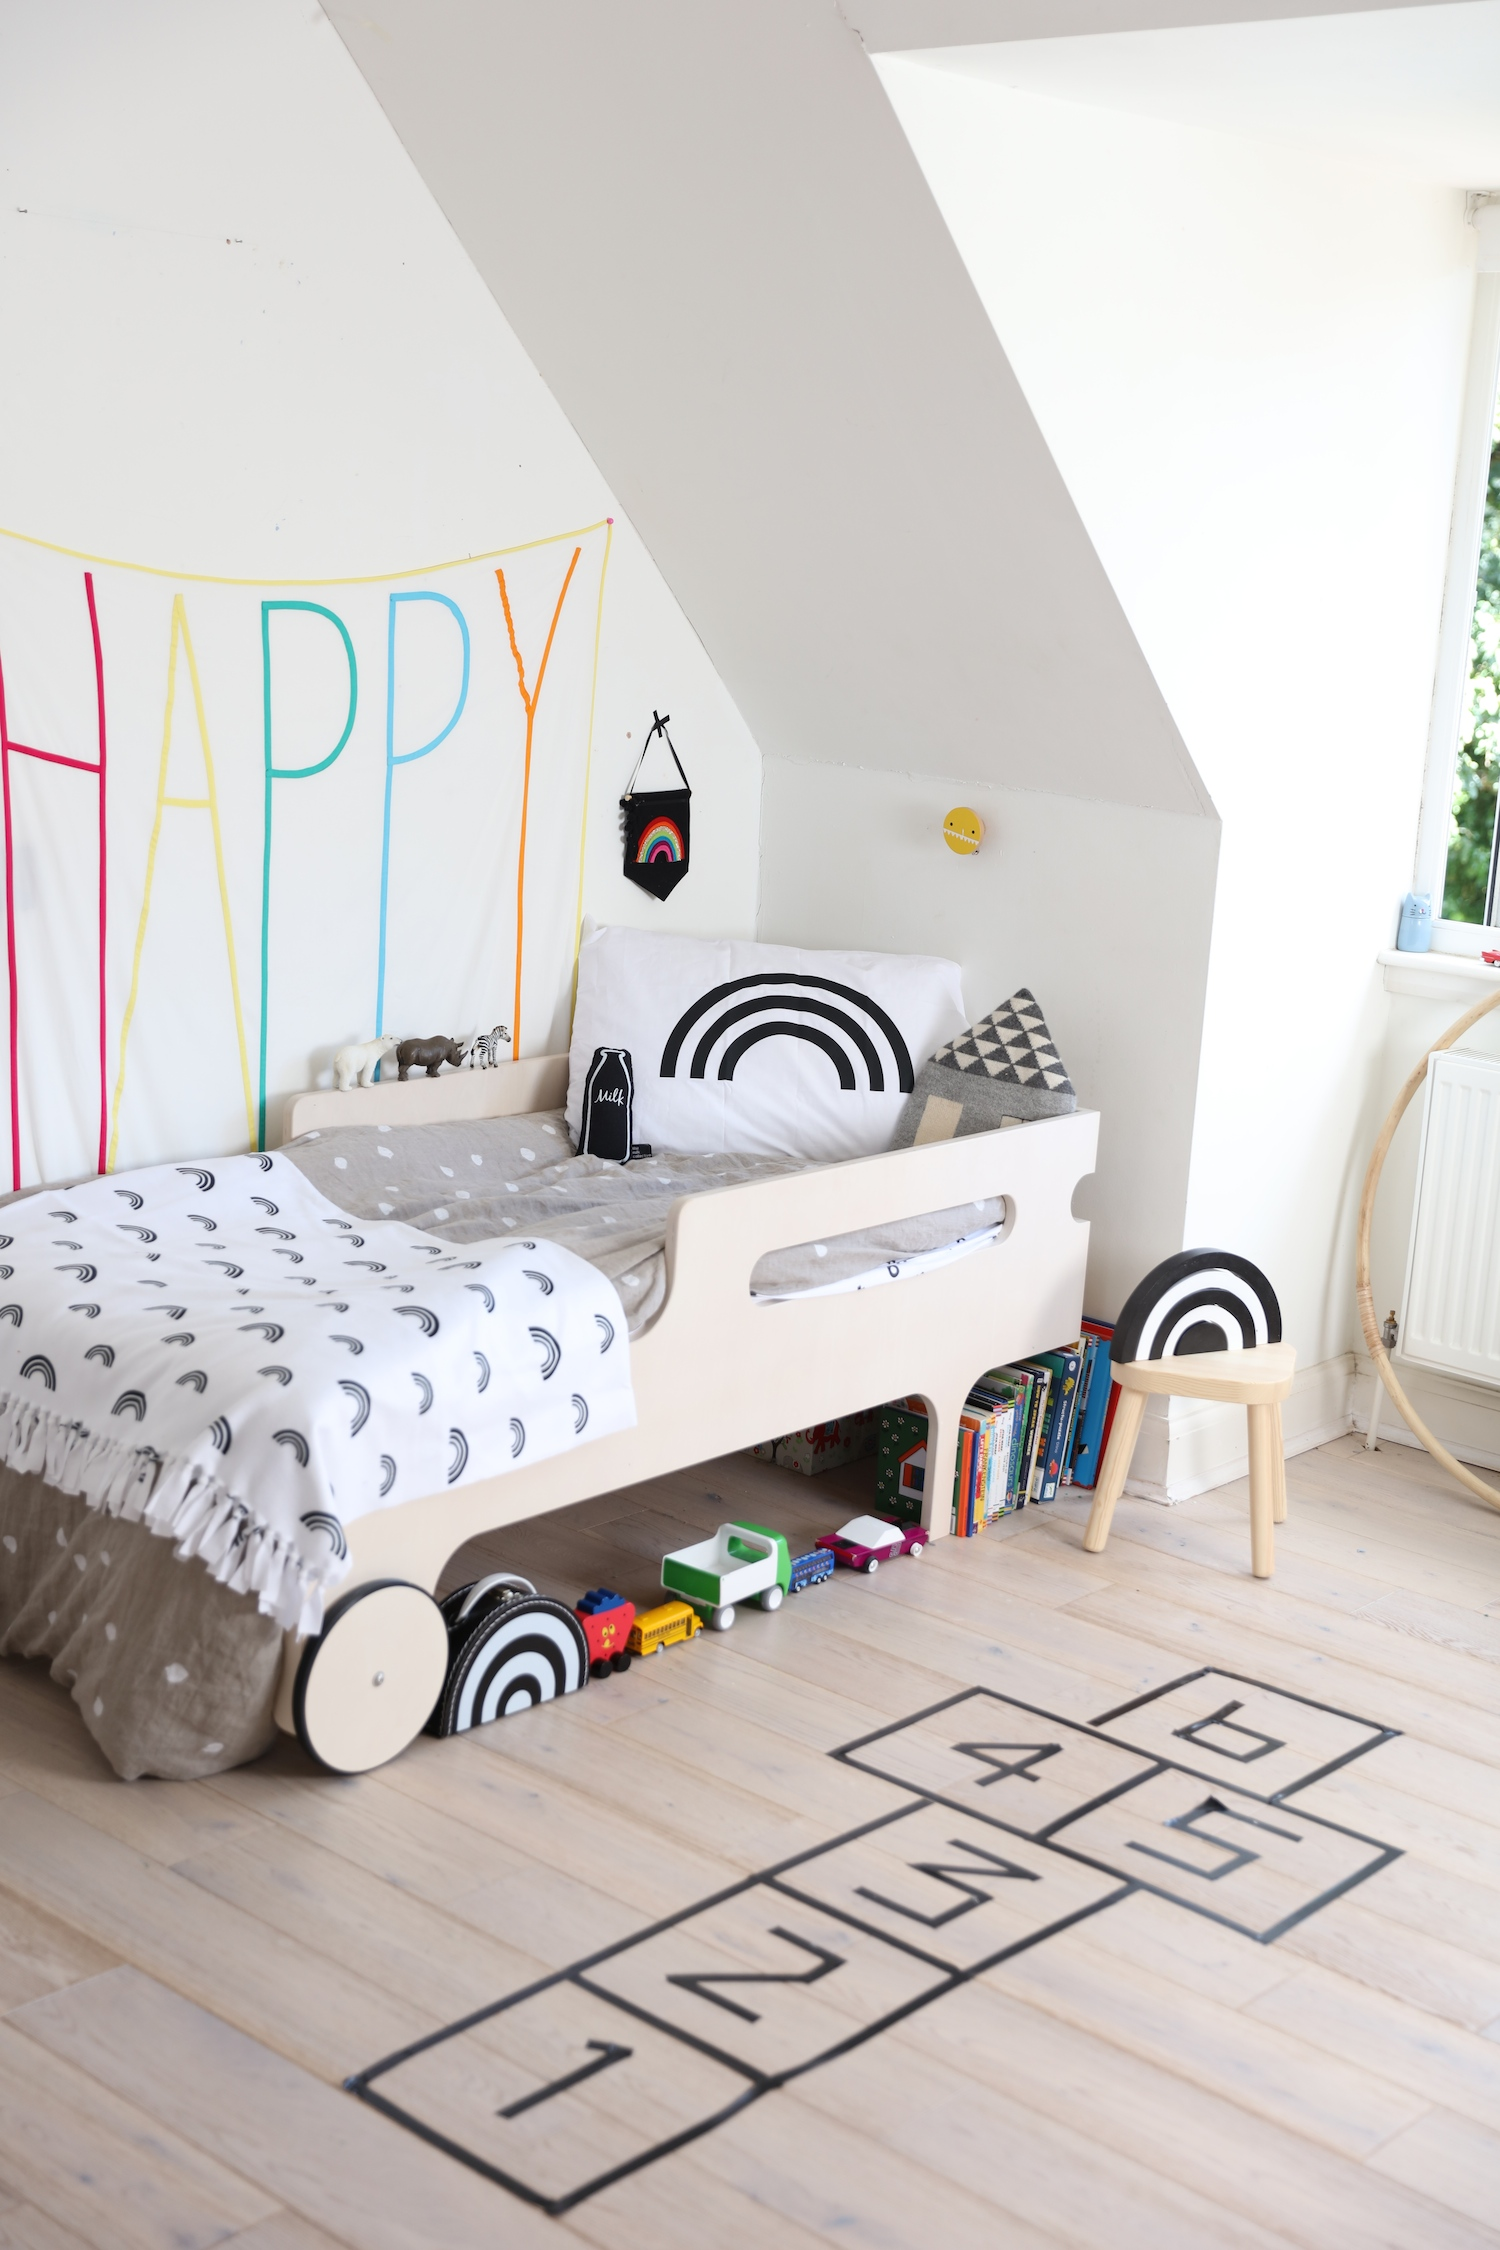 Jaxon_james_hopscotch_kids_room